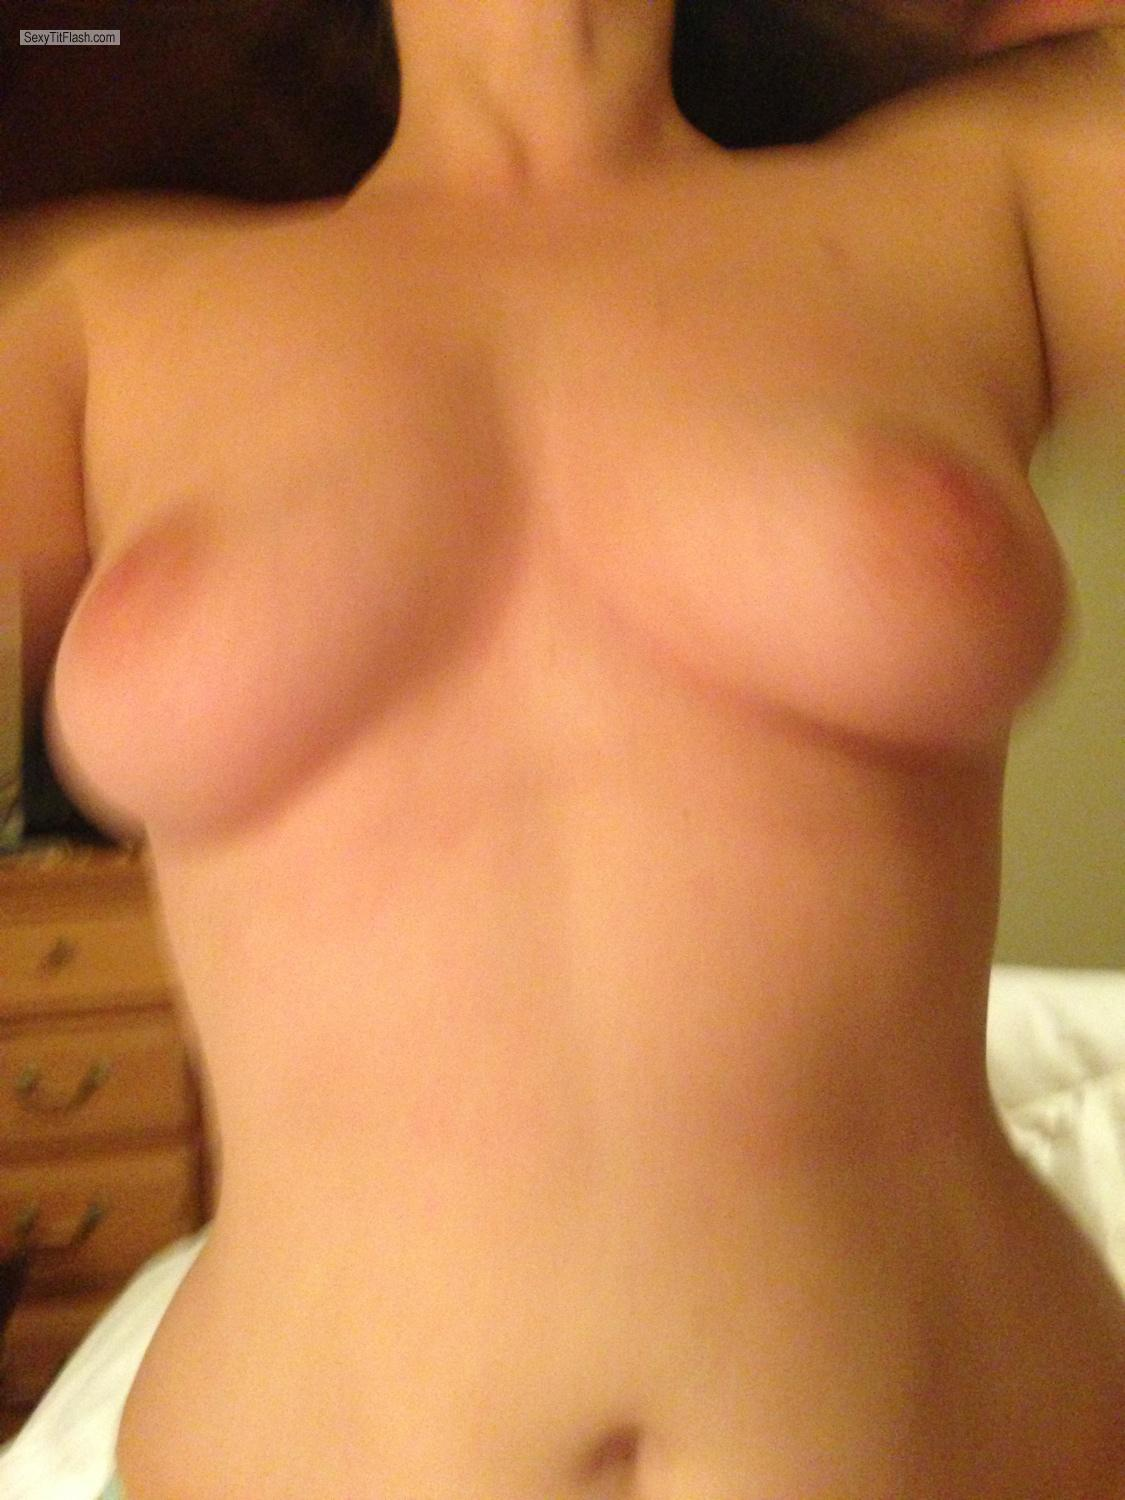 Tit Flash: Medium Tits By IPhone - Puppers from United States